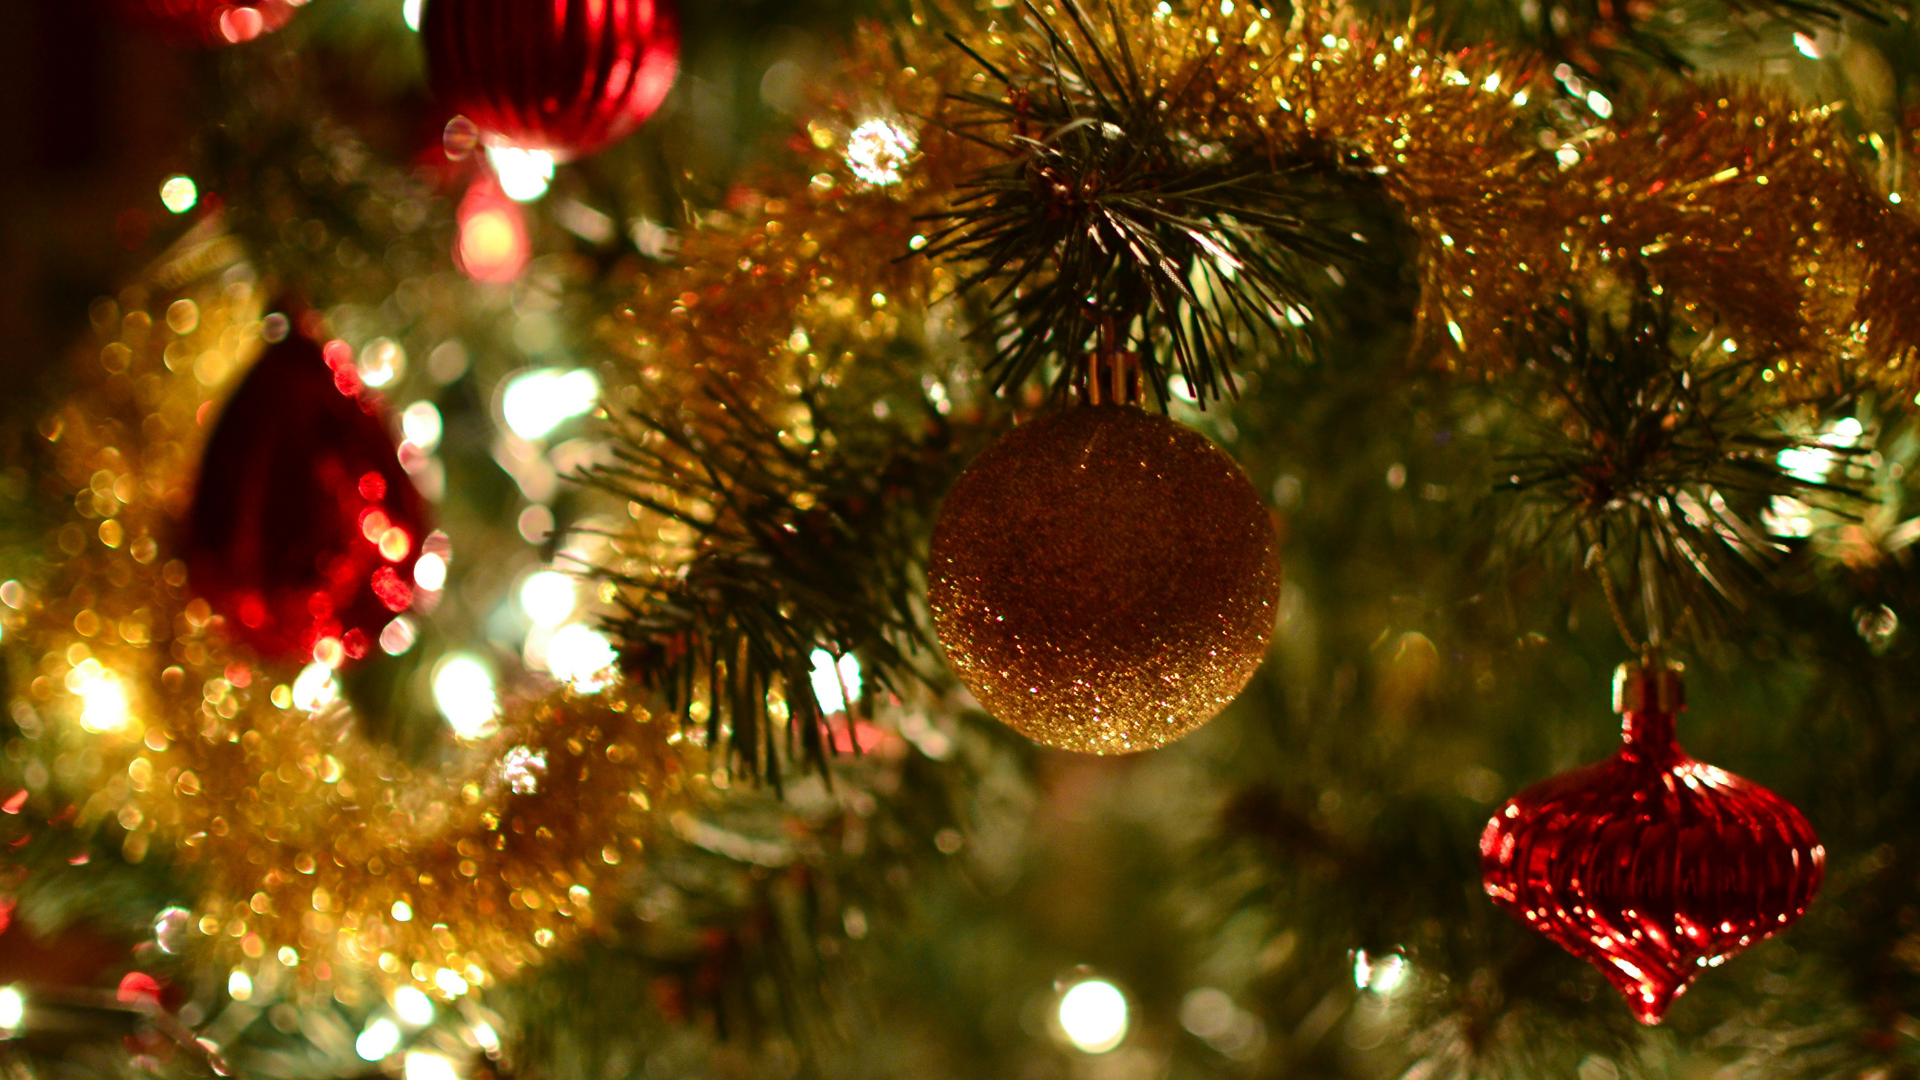 Shiny, glittering red and gold baubles and gold tinsel adorn a green Christmas tree